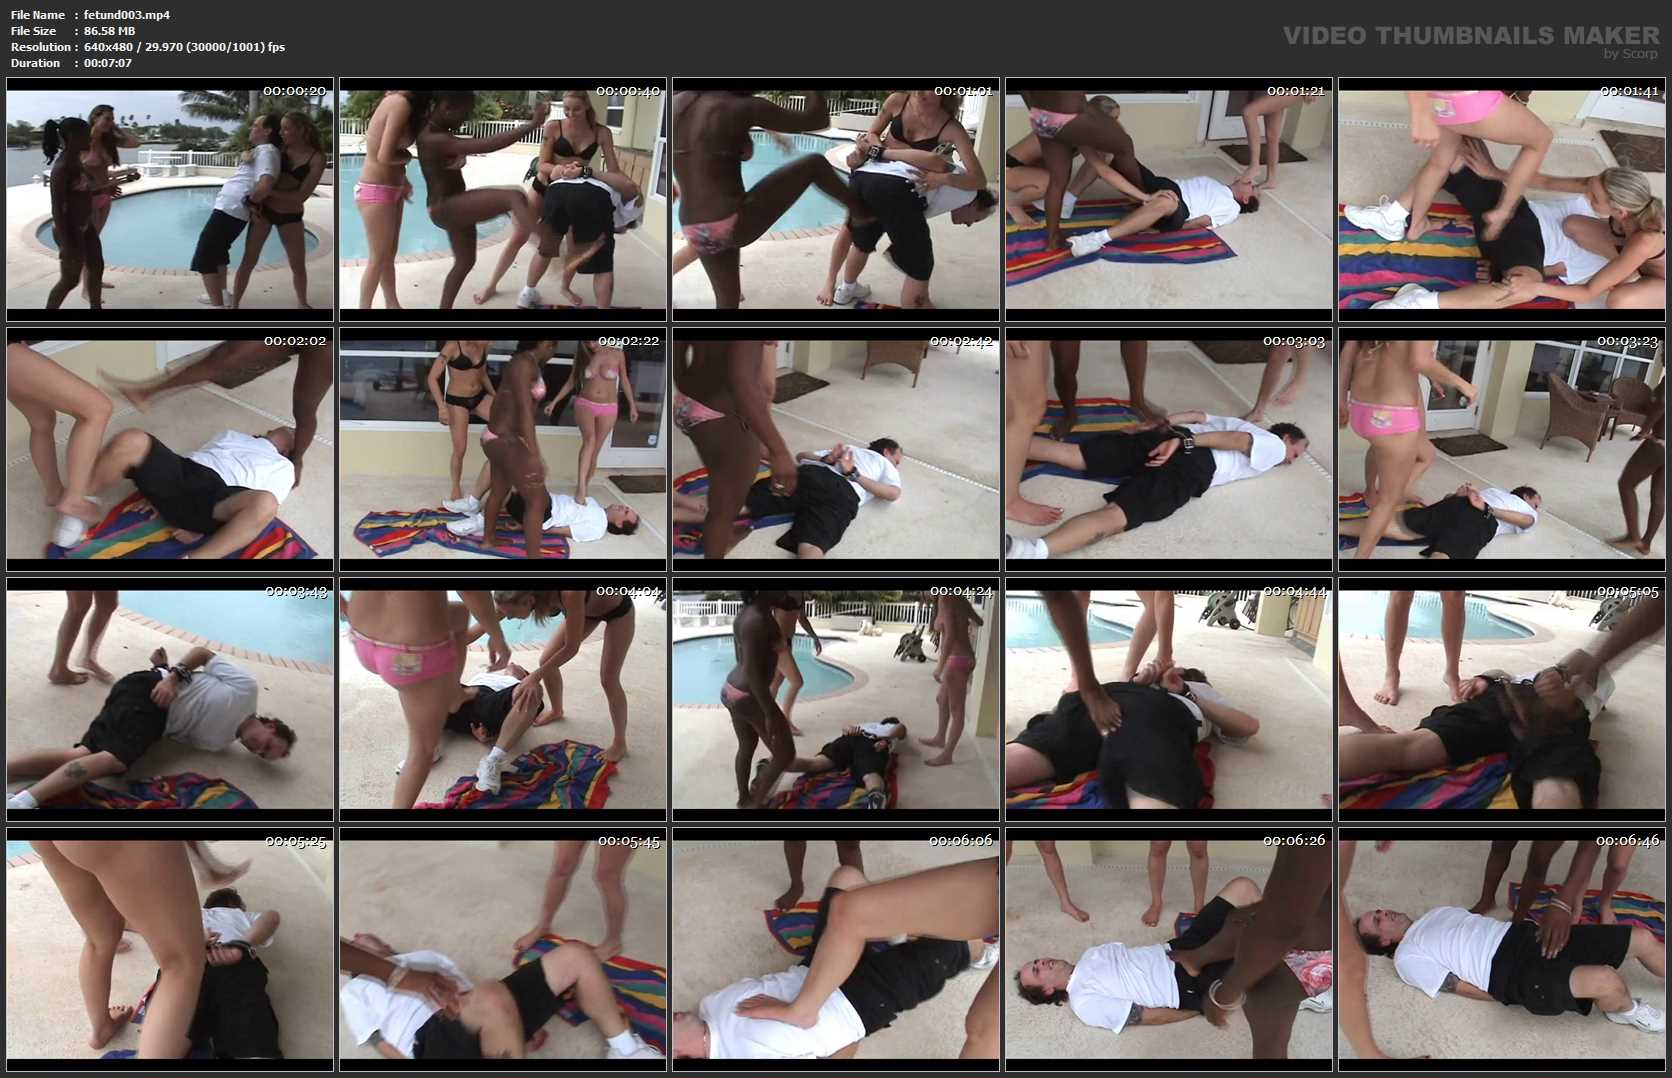 3 Girl PoolsideBeating - FETISHUNDERWORLD - SD/480p/MP4